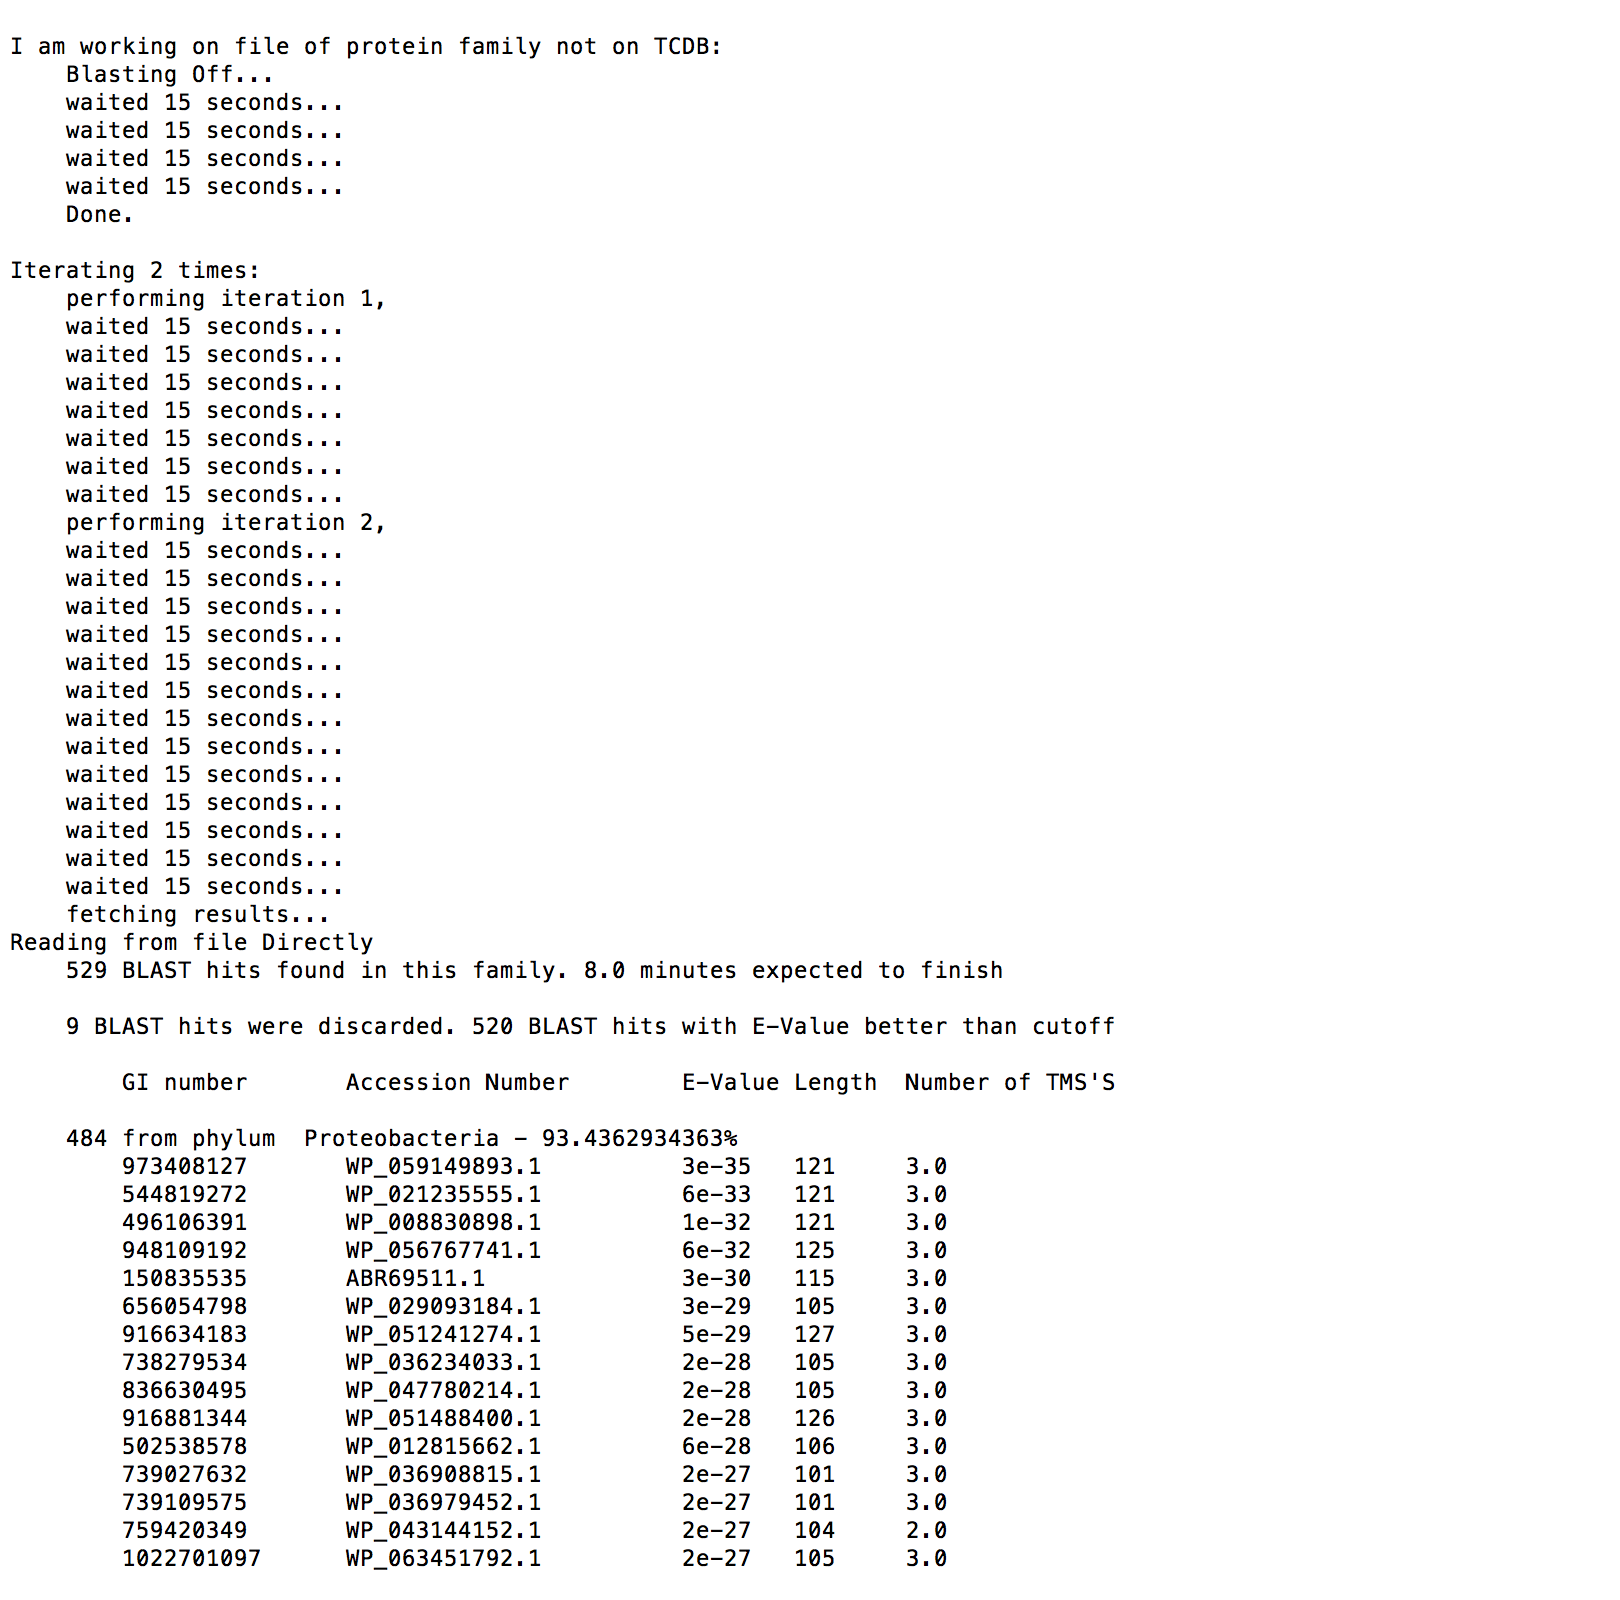 Output for Family seqs1 outside TCDB